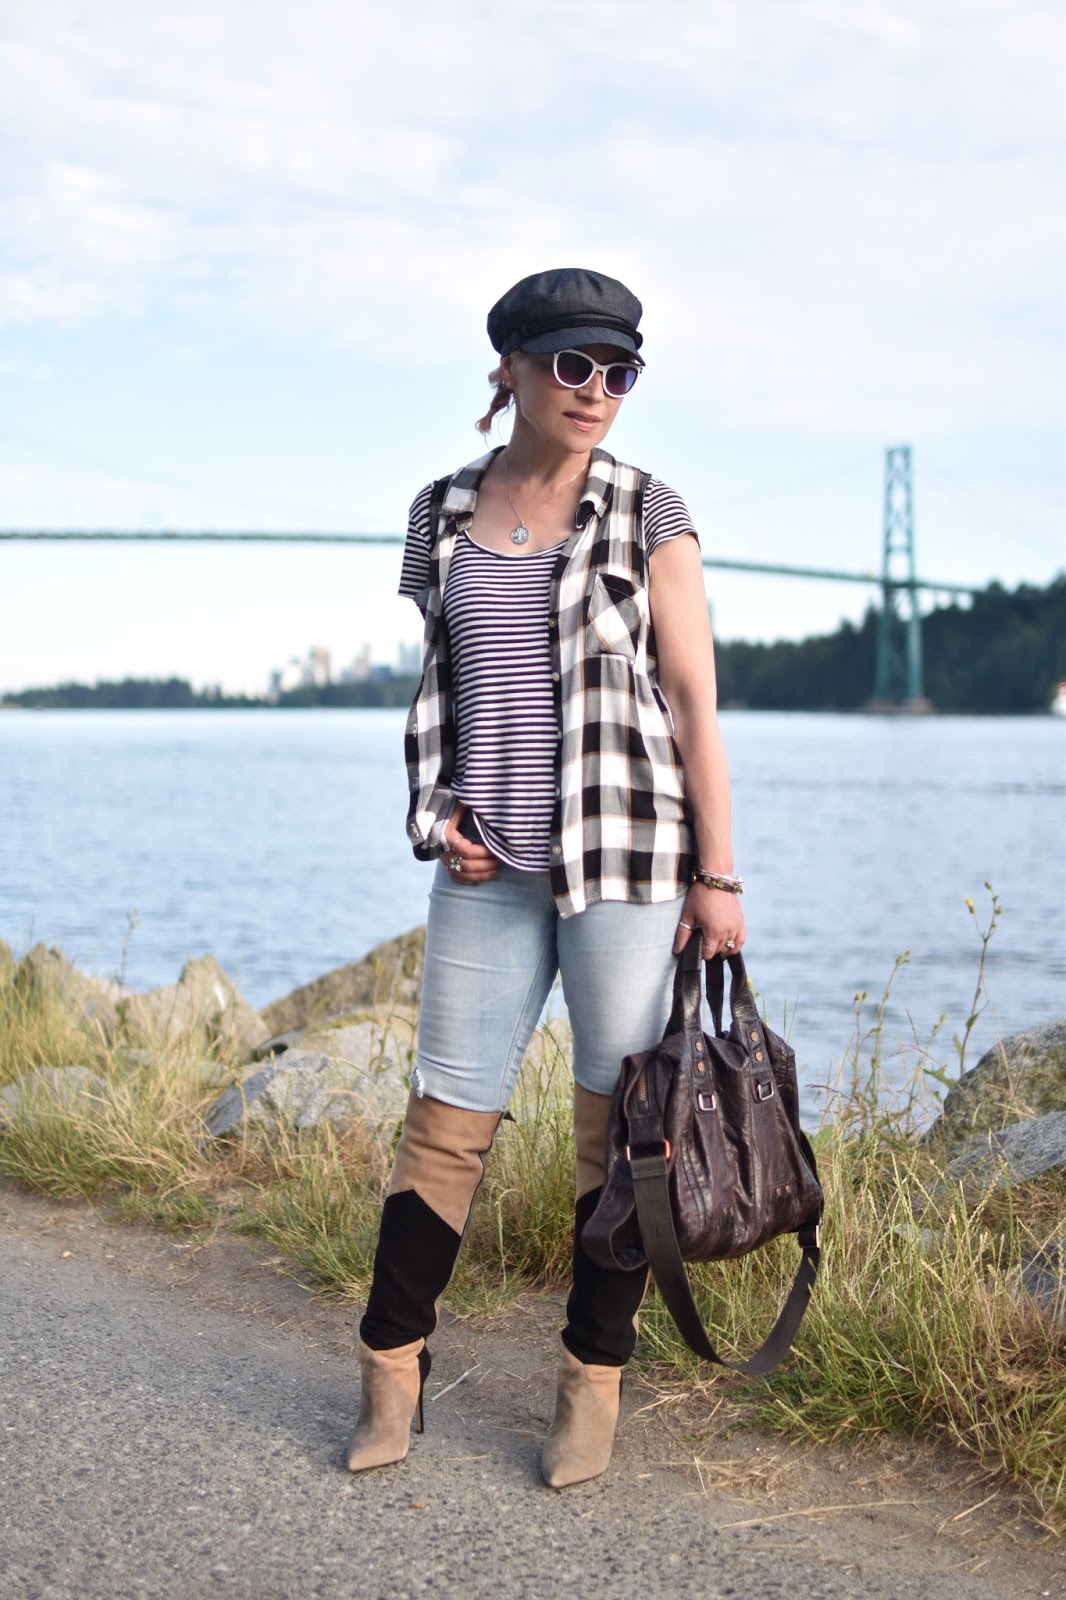 Monika Faulkner personal style inspiration - layered striped and plaid tops with skinny jeans and OTK boots